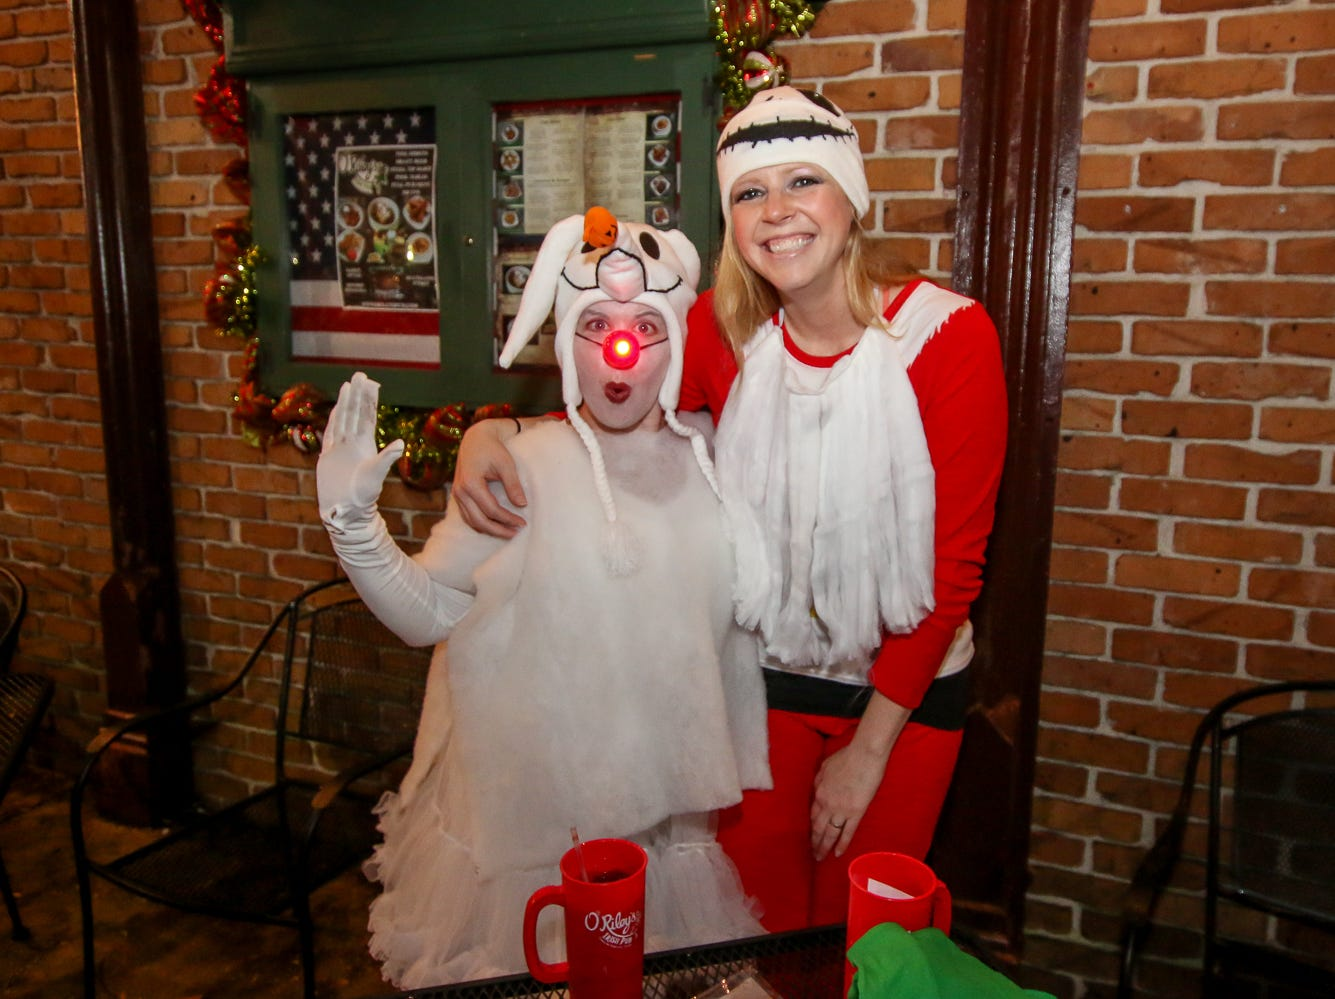 Heavy rain throughout the day didn't stop hundreds of people from joining in on O'Riley's Irish Pub's 6th annual Santa Pub Crawl through downtown Pensacola on Saturday, December 1, 2018. The event raises cash donations and toys for local charities.